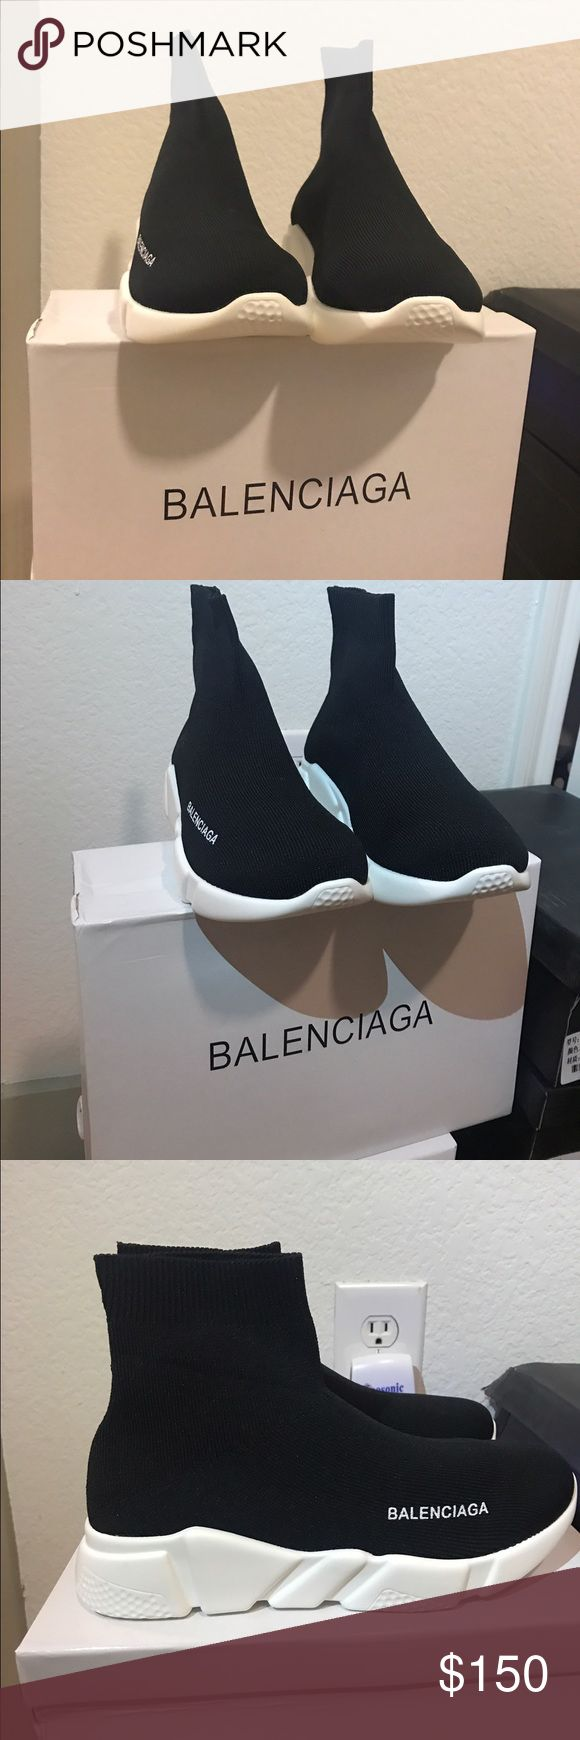 🔥SALE🔥BALENCIAGA men's Knit High-Top Sneakers BALENCIAGA men's Knit High-Top Sneakers⚠️UA⚠️ Balenciaga Shoes Sneakers